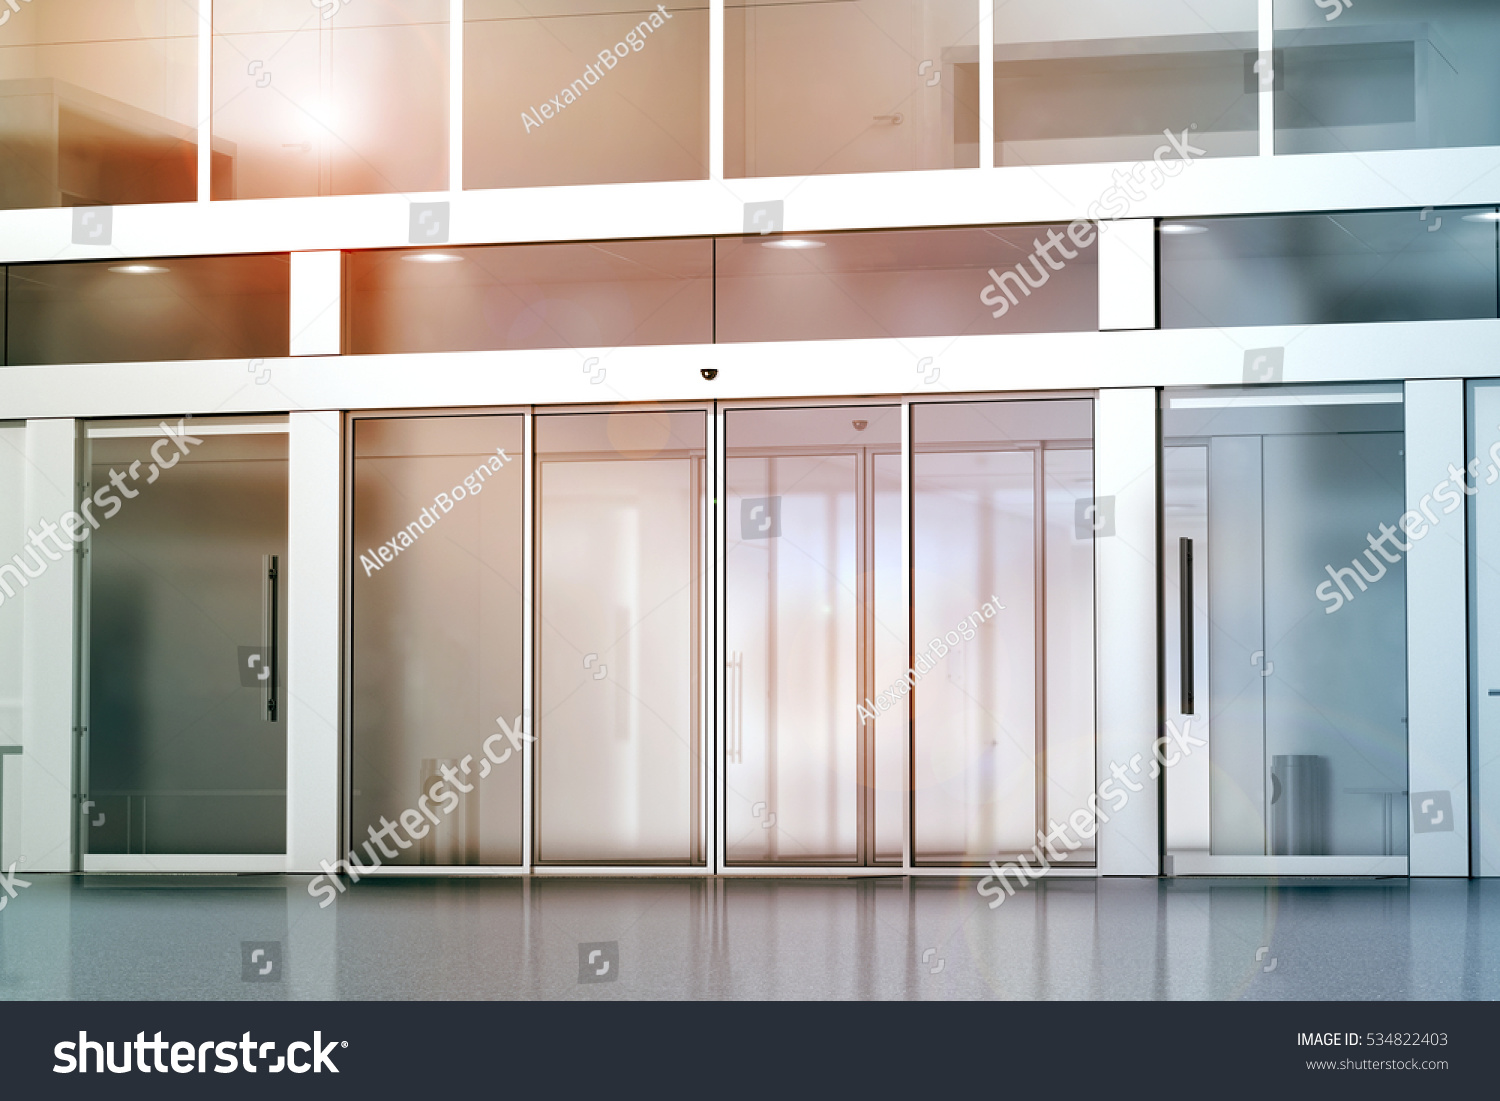 Royalty Free Stock Illustration Of Blank Sliding Glass Doors